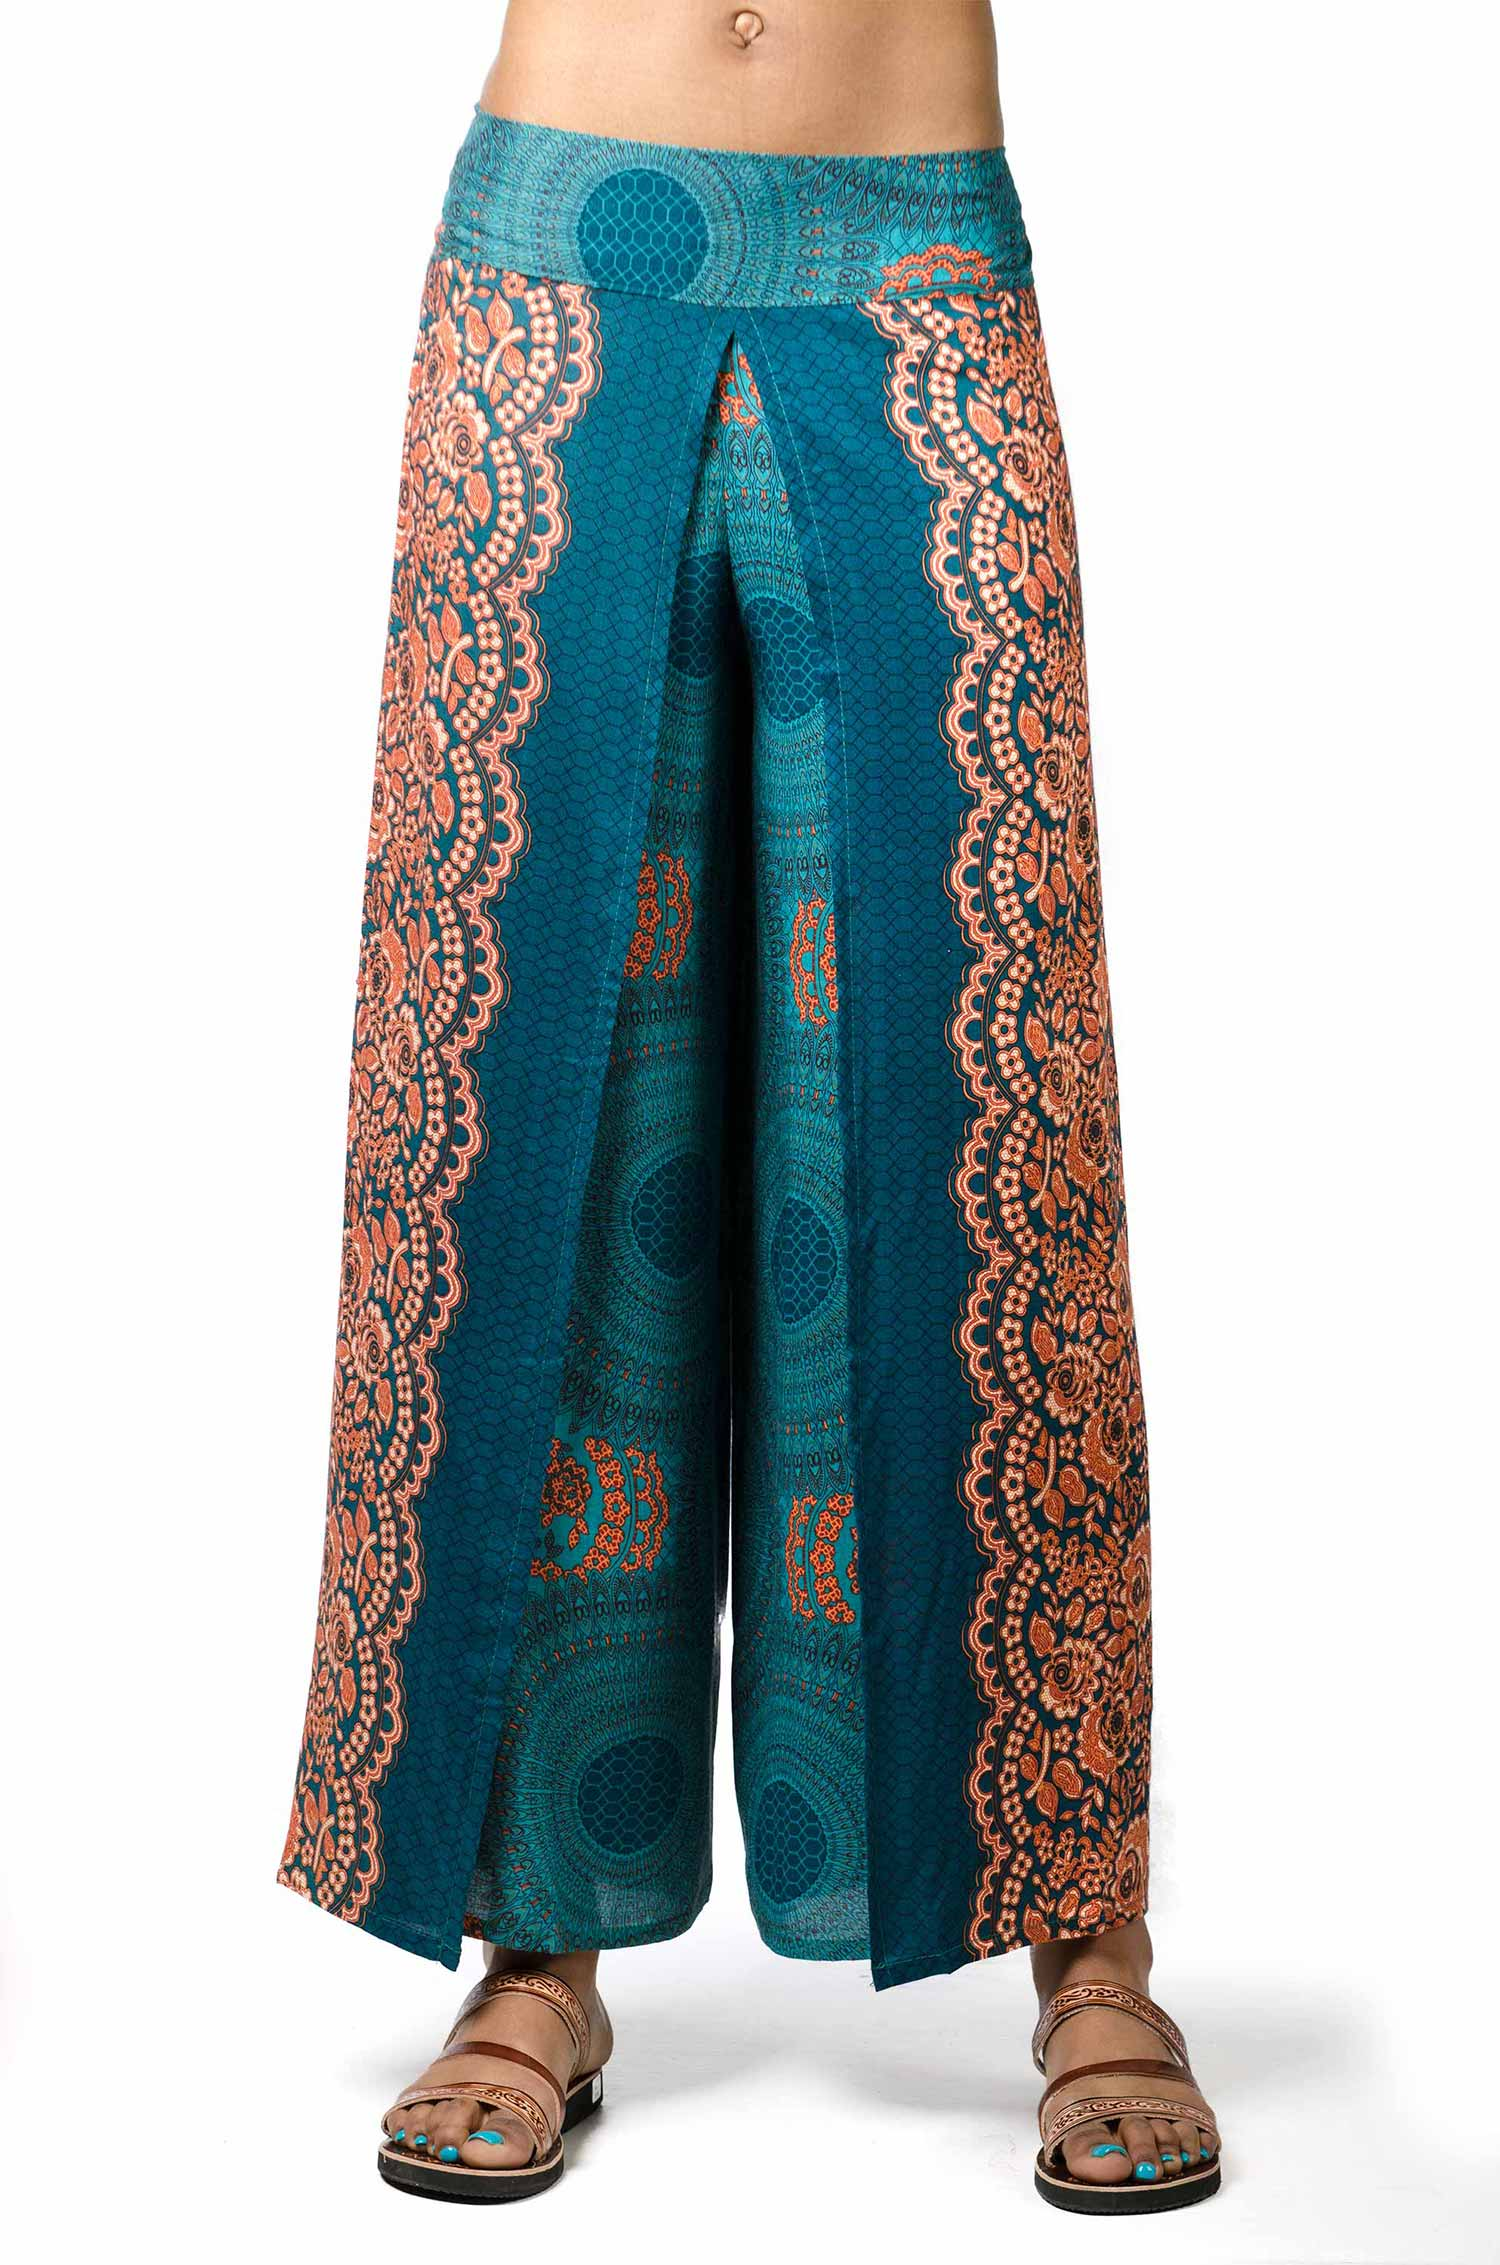 Wrap Leg Print Pants - Teal